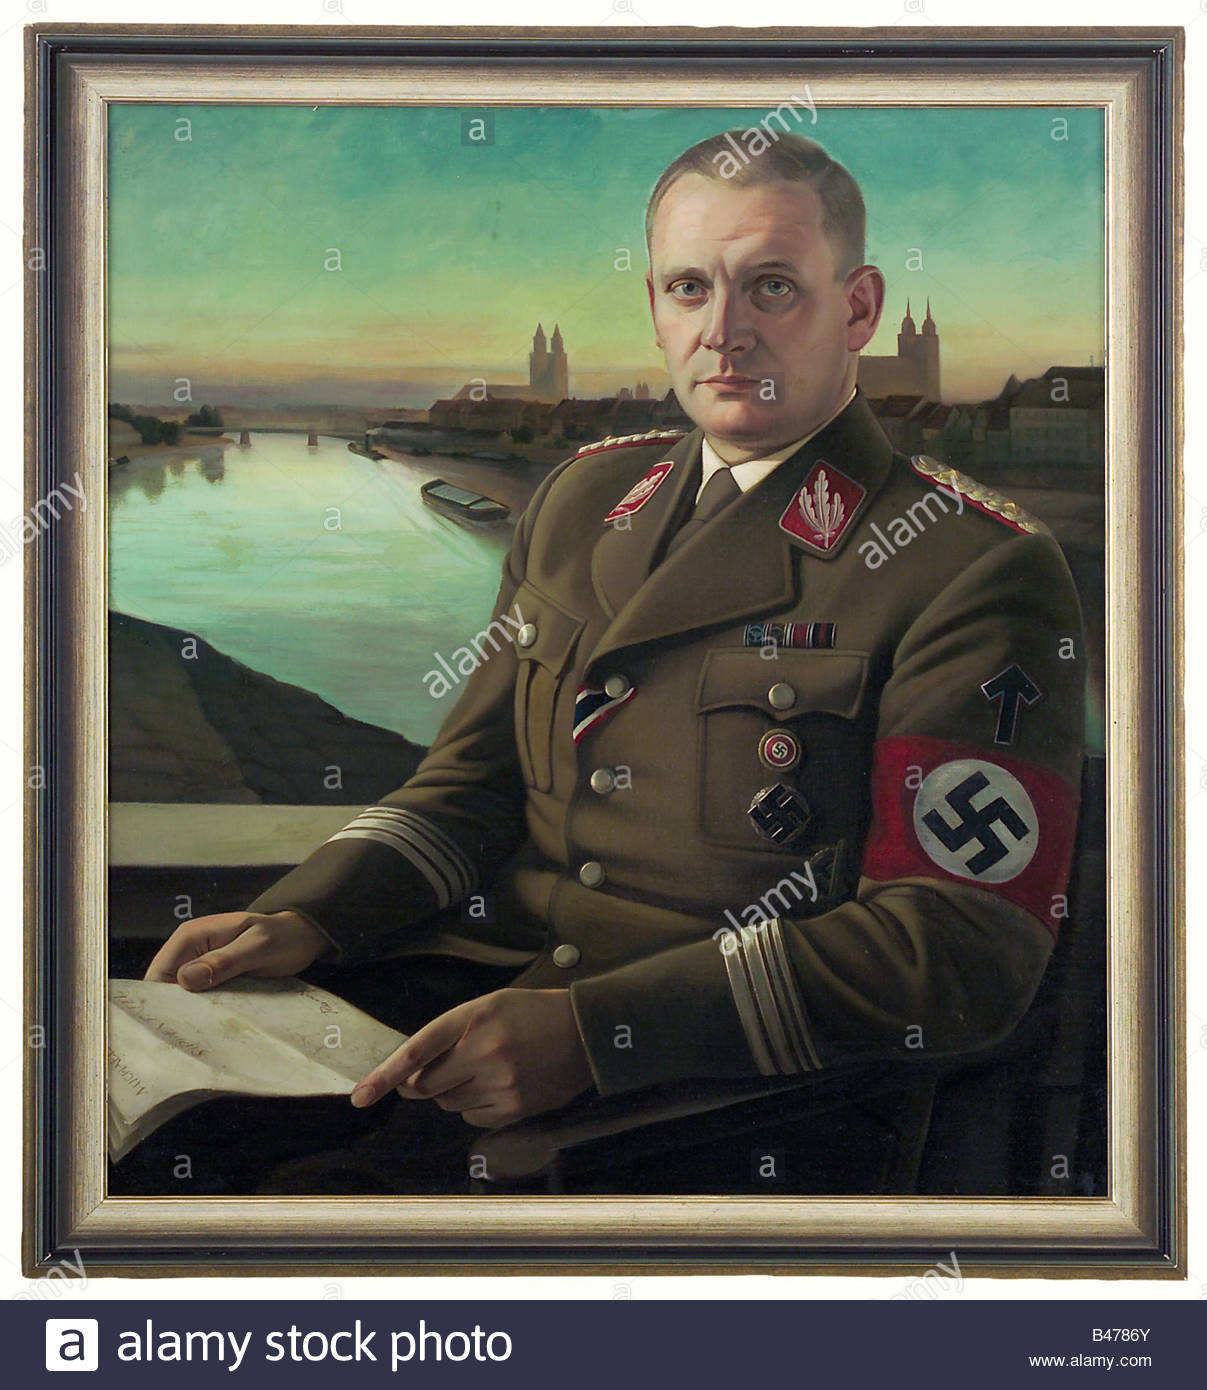 SA-Gruppenführer Rudolf Michaelis, A portrait, attributed to Wilhelm Oppermann. Oil on canvas, unsigned. Michaelis Stock Photo